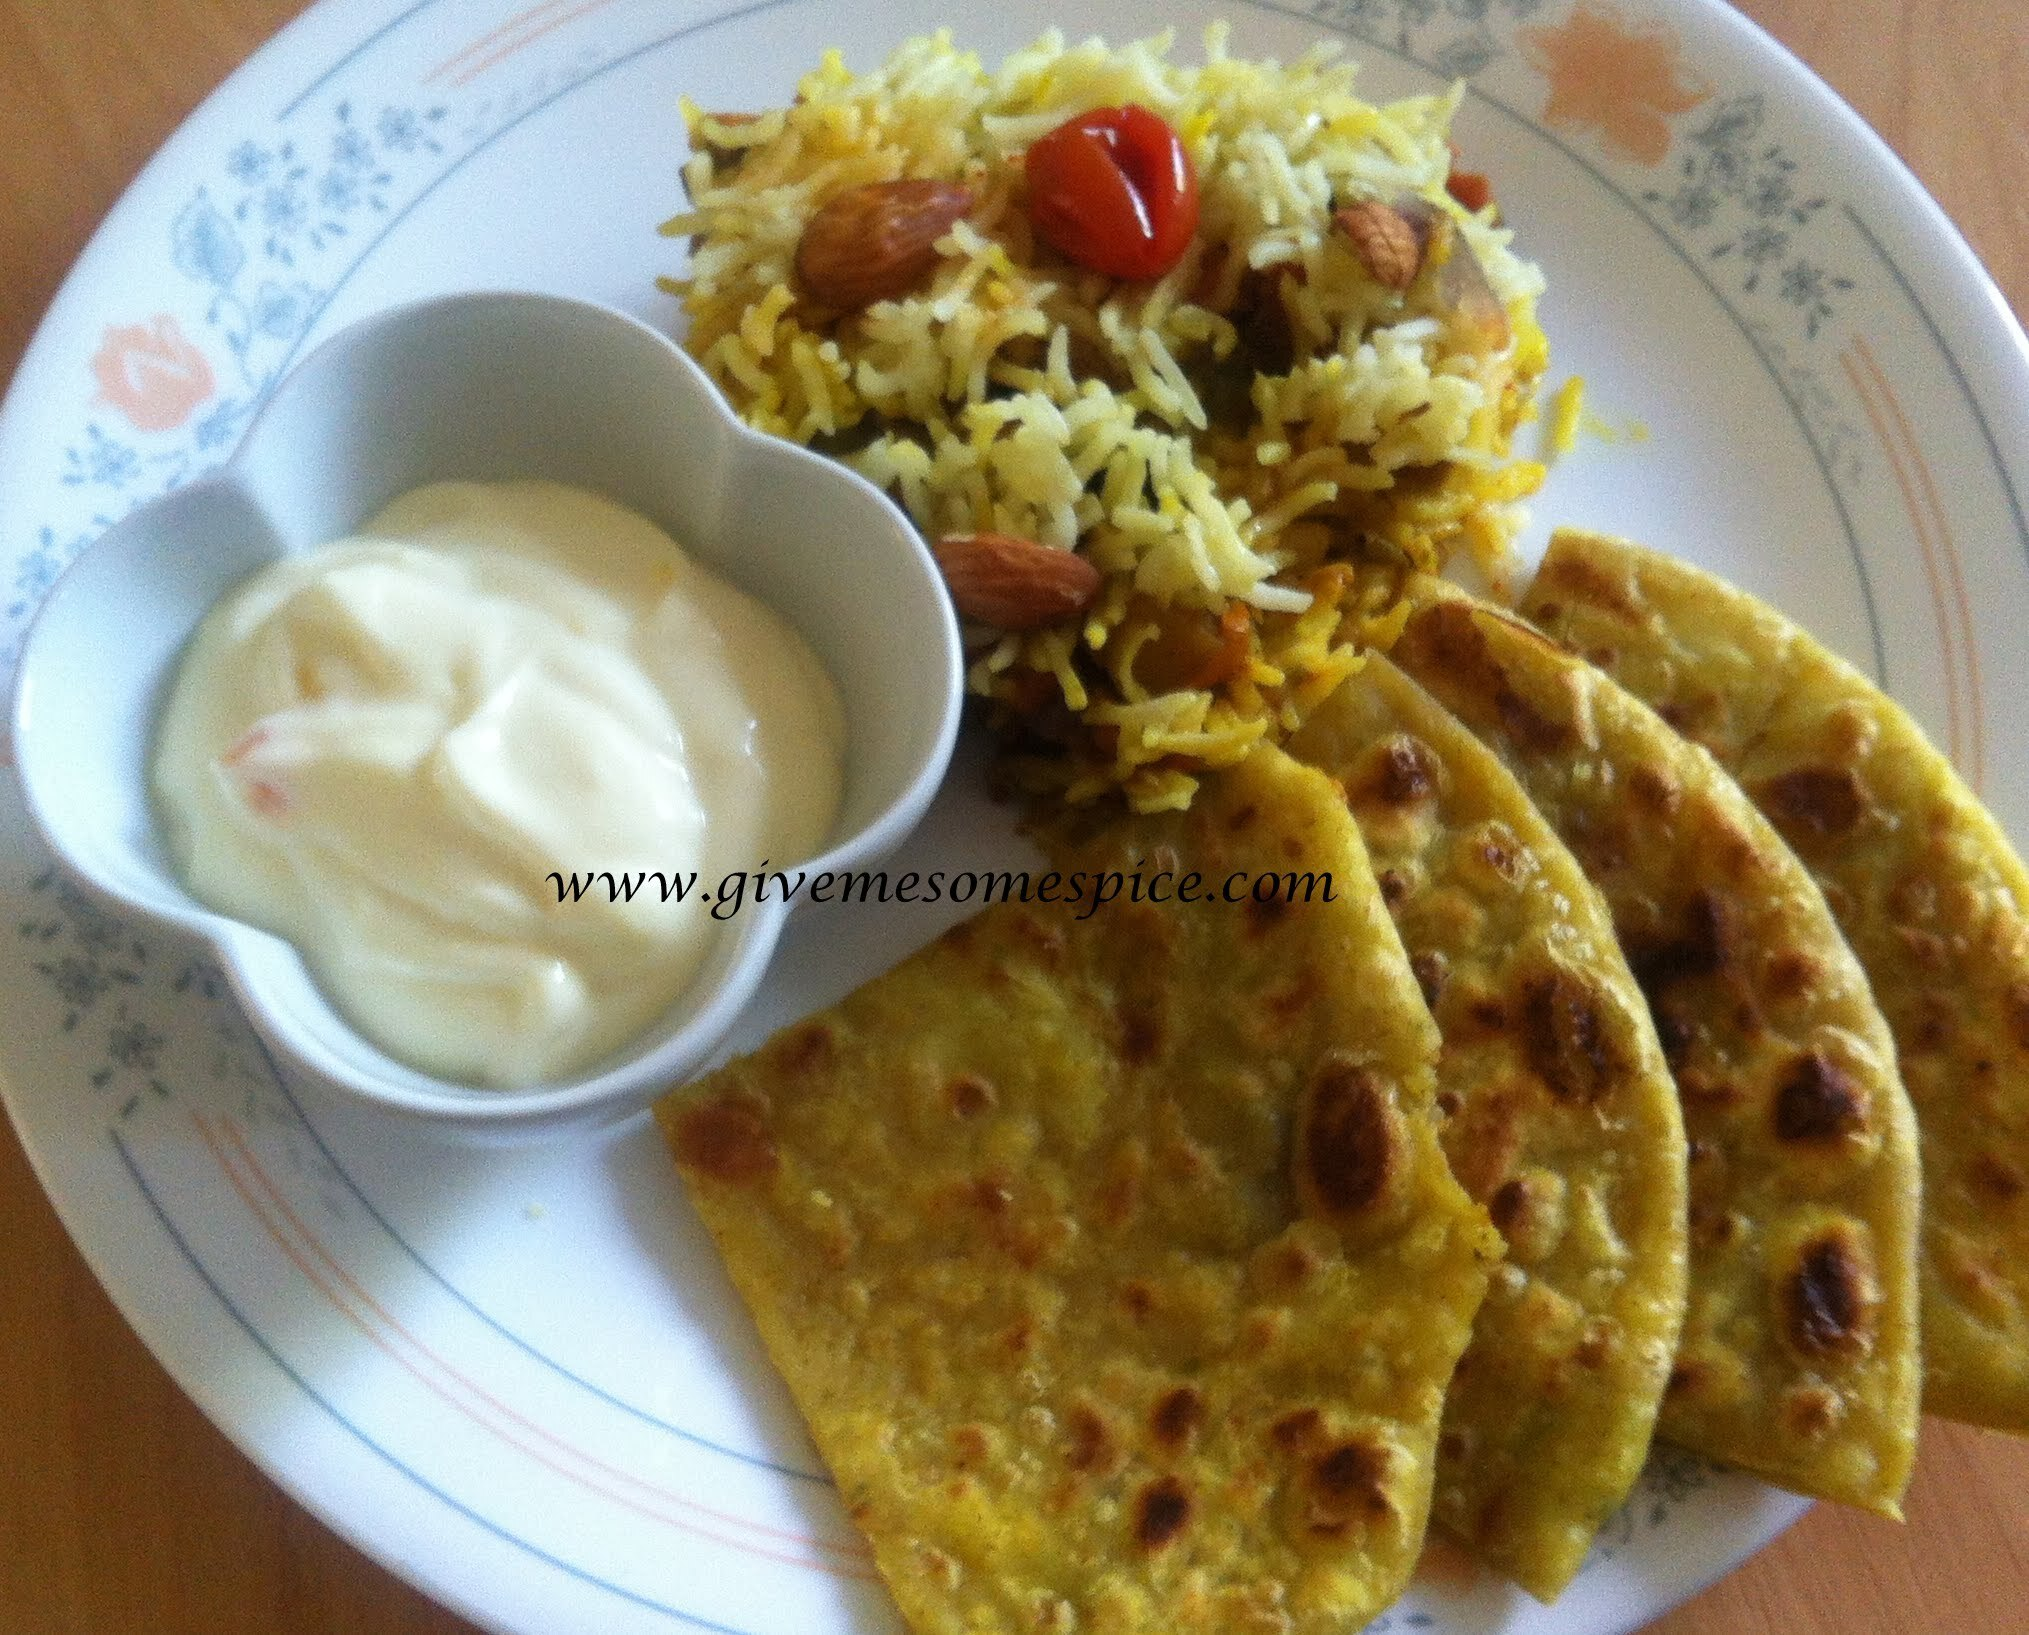 Paneer and cheddar cheese stuffed parathas